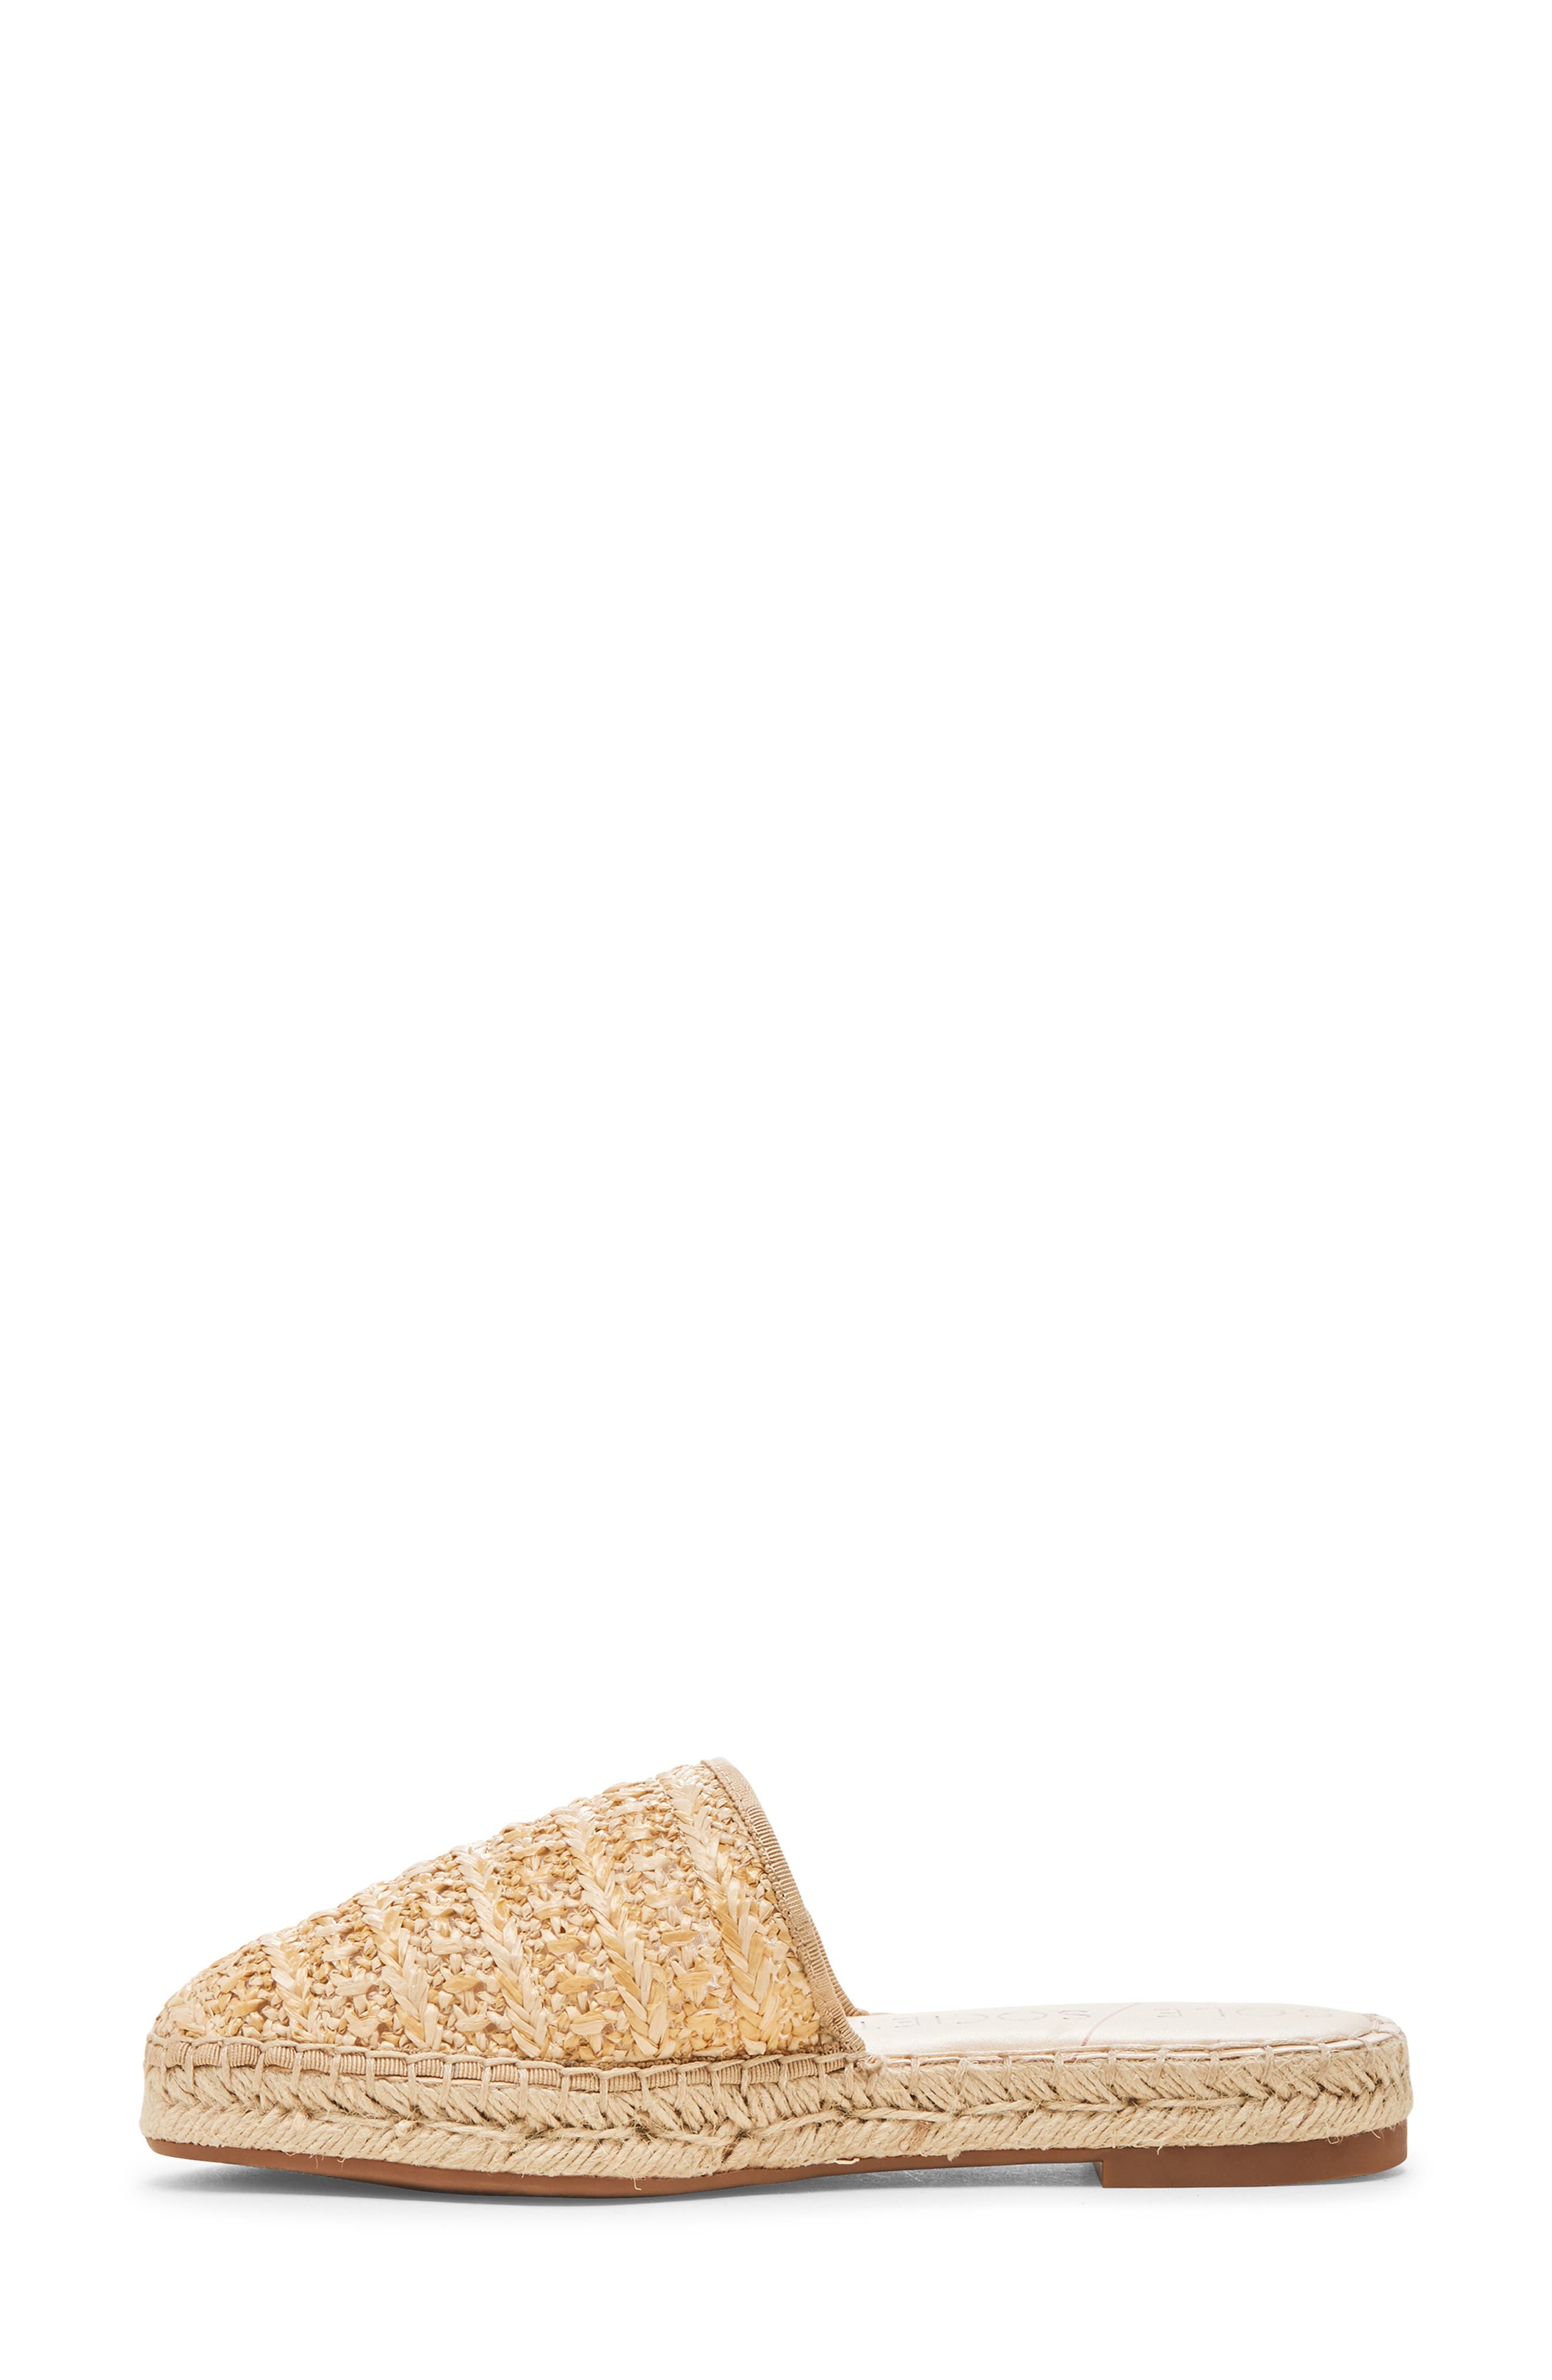 SOLE SOCIETY, Sadelle Espadrille Mule, Alternate thumbnail 9, color, NATURAL FABRIC